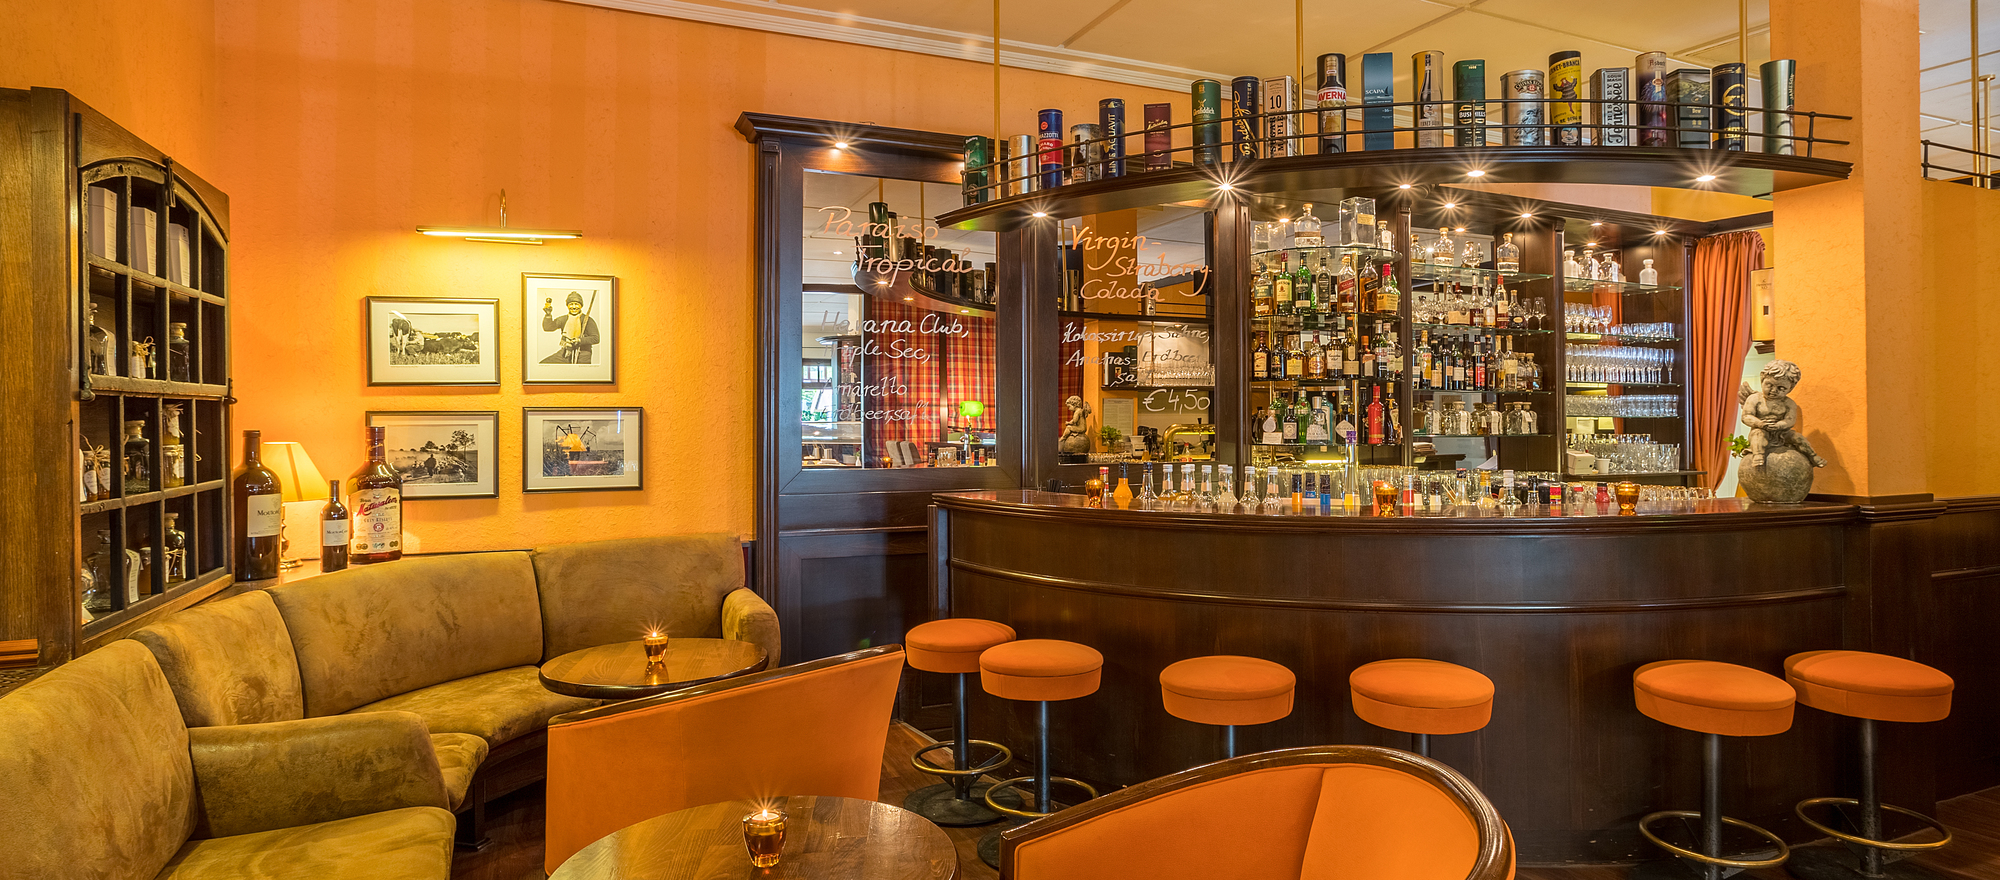 Let the evening end in the cozy hotel bar in the the 4-star hotel Ringhotel Warnemuender Hof in Rostock-Warnemuende